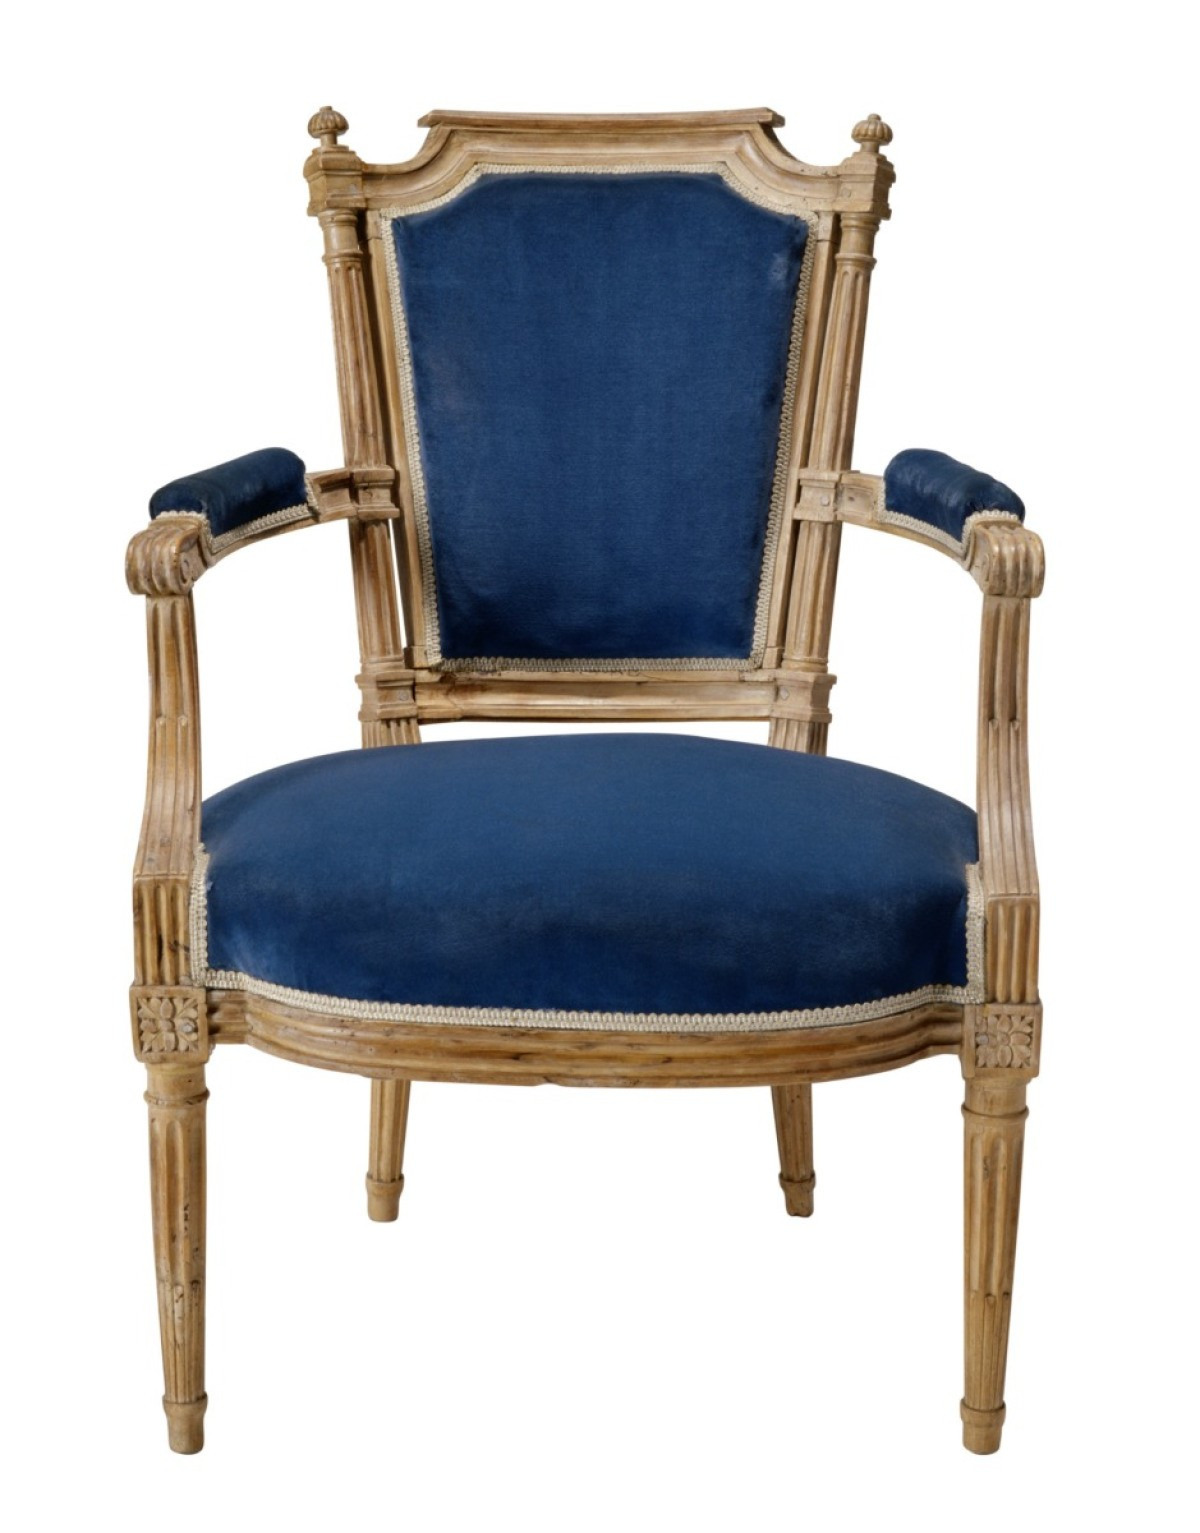 antique chair x3